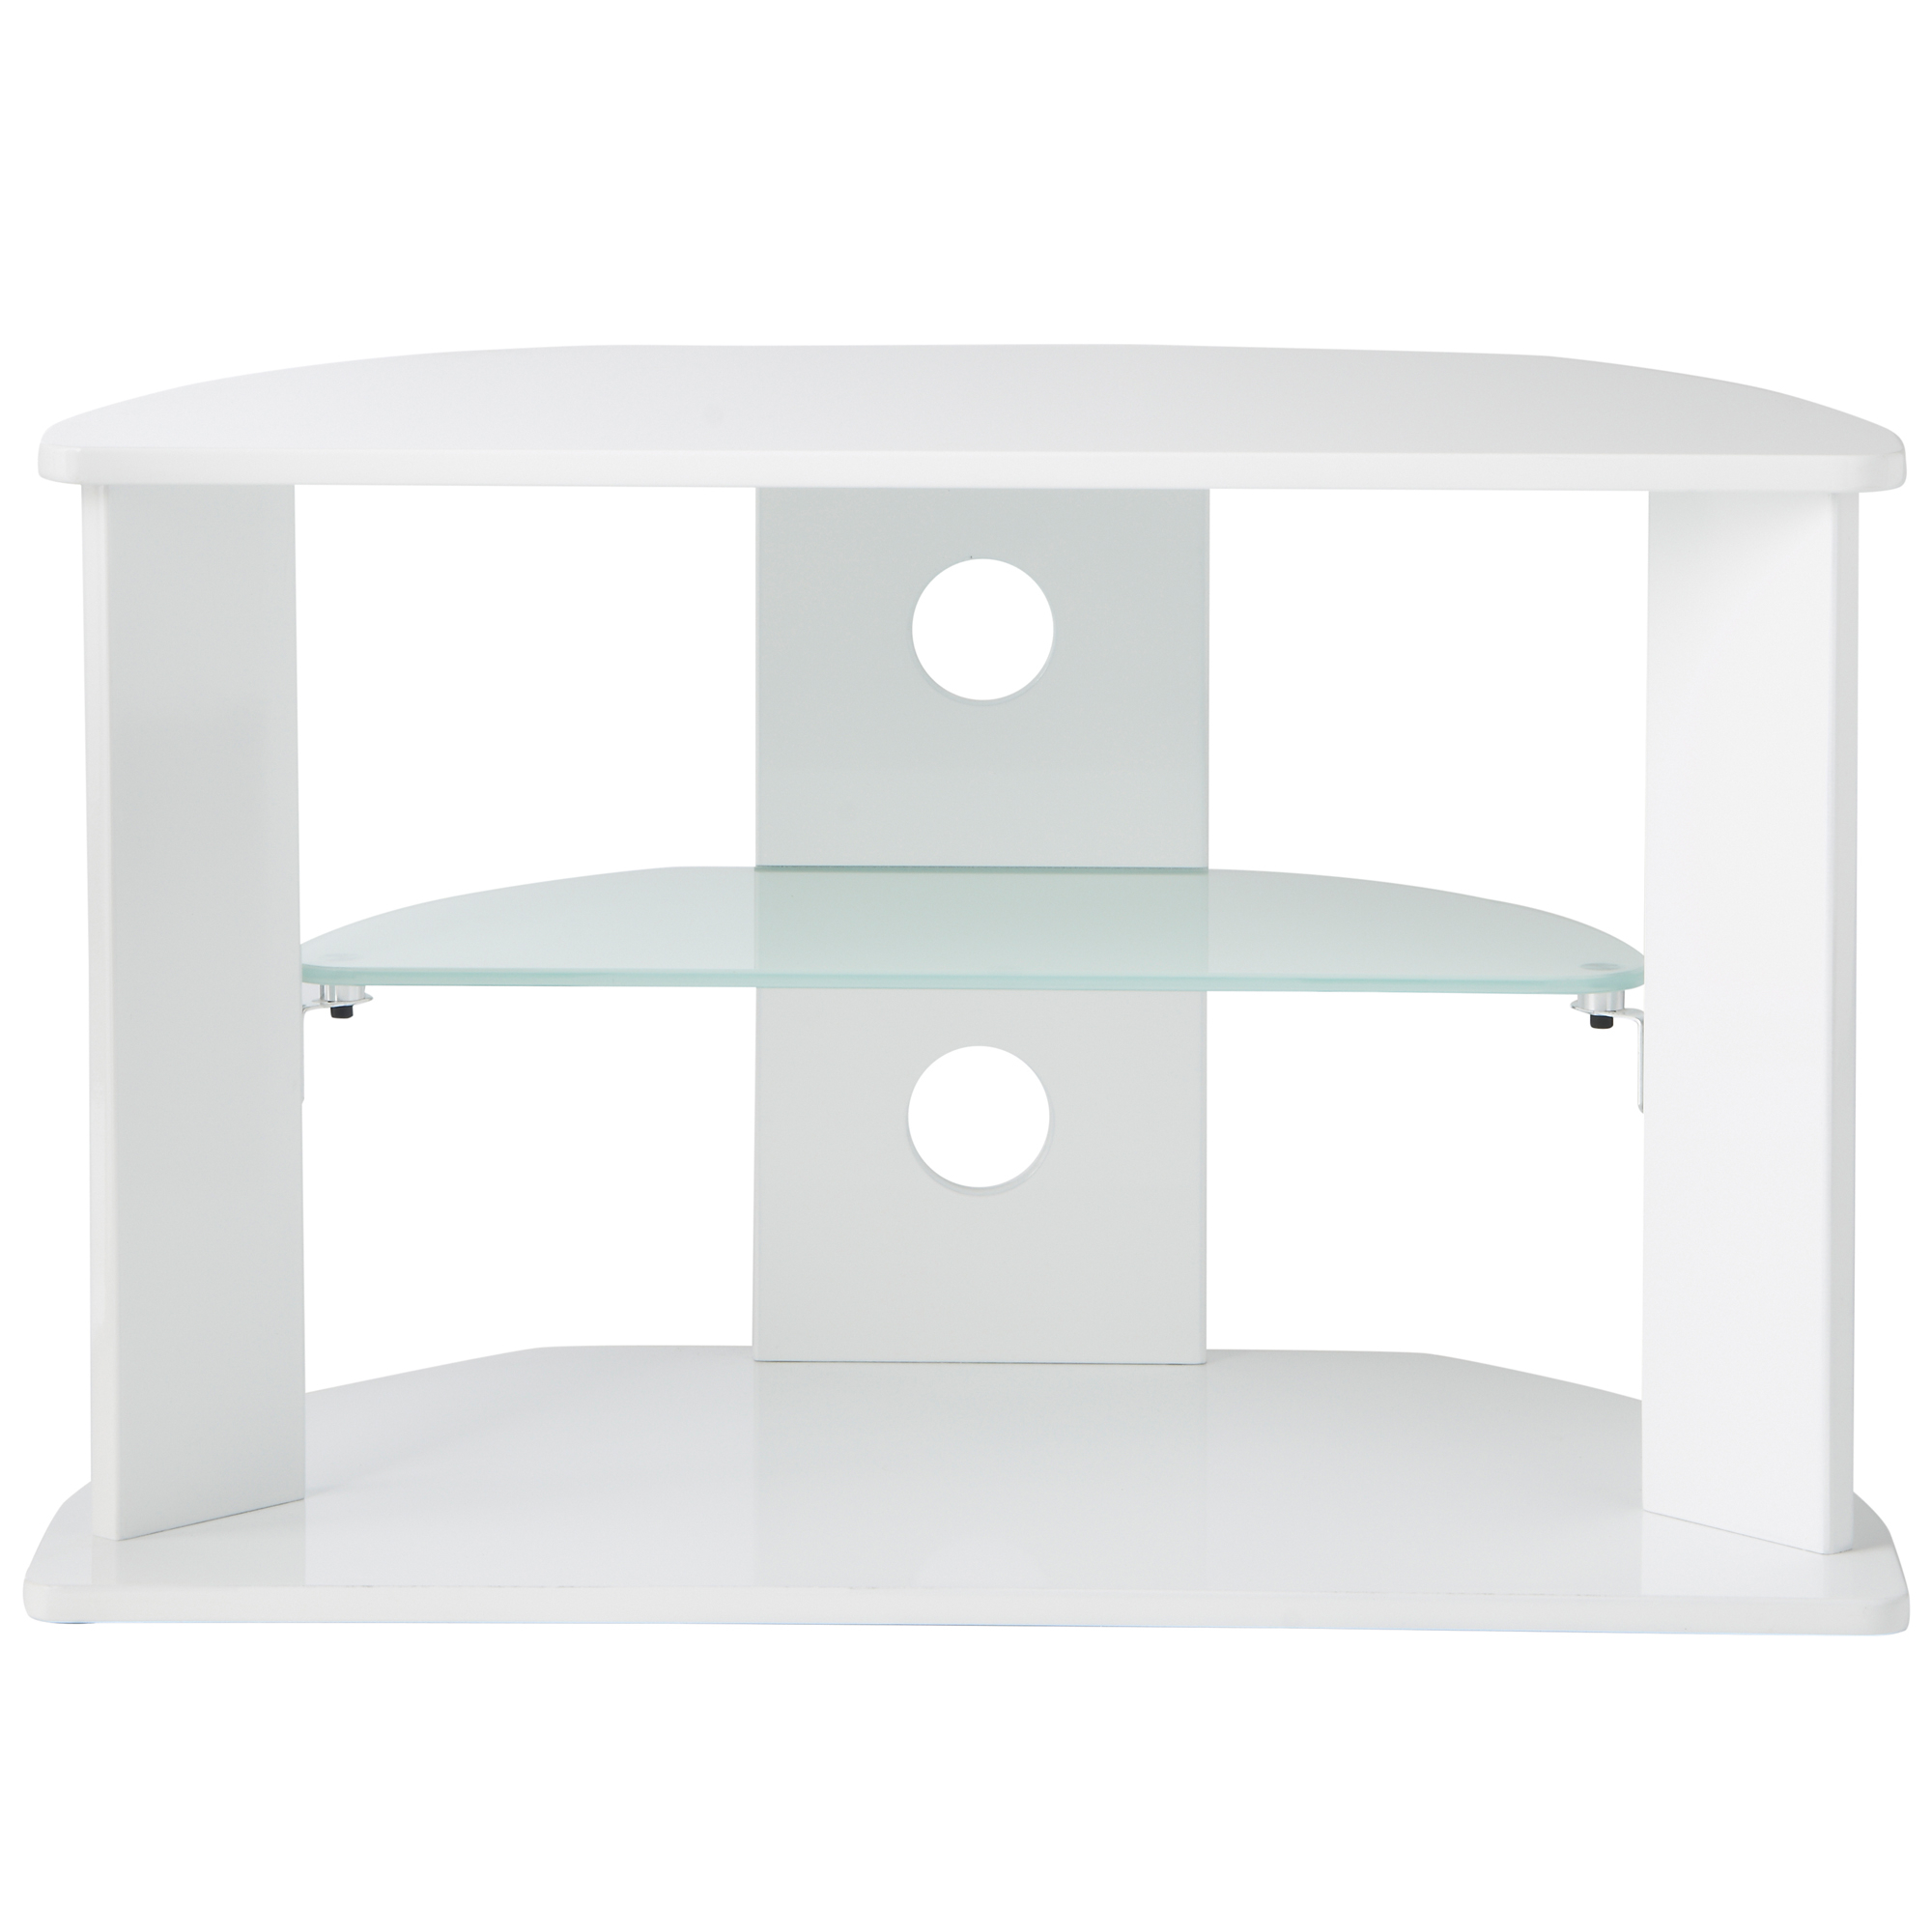 Most Recently Released Vonhaus High Gloss Mdf White Tv Stand With 3 Shelves For Tvs Up To Inside Small White Tv Stands (View 2 of 20)